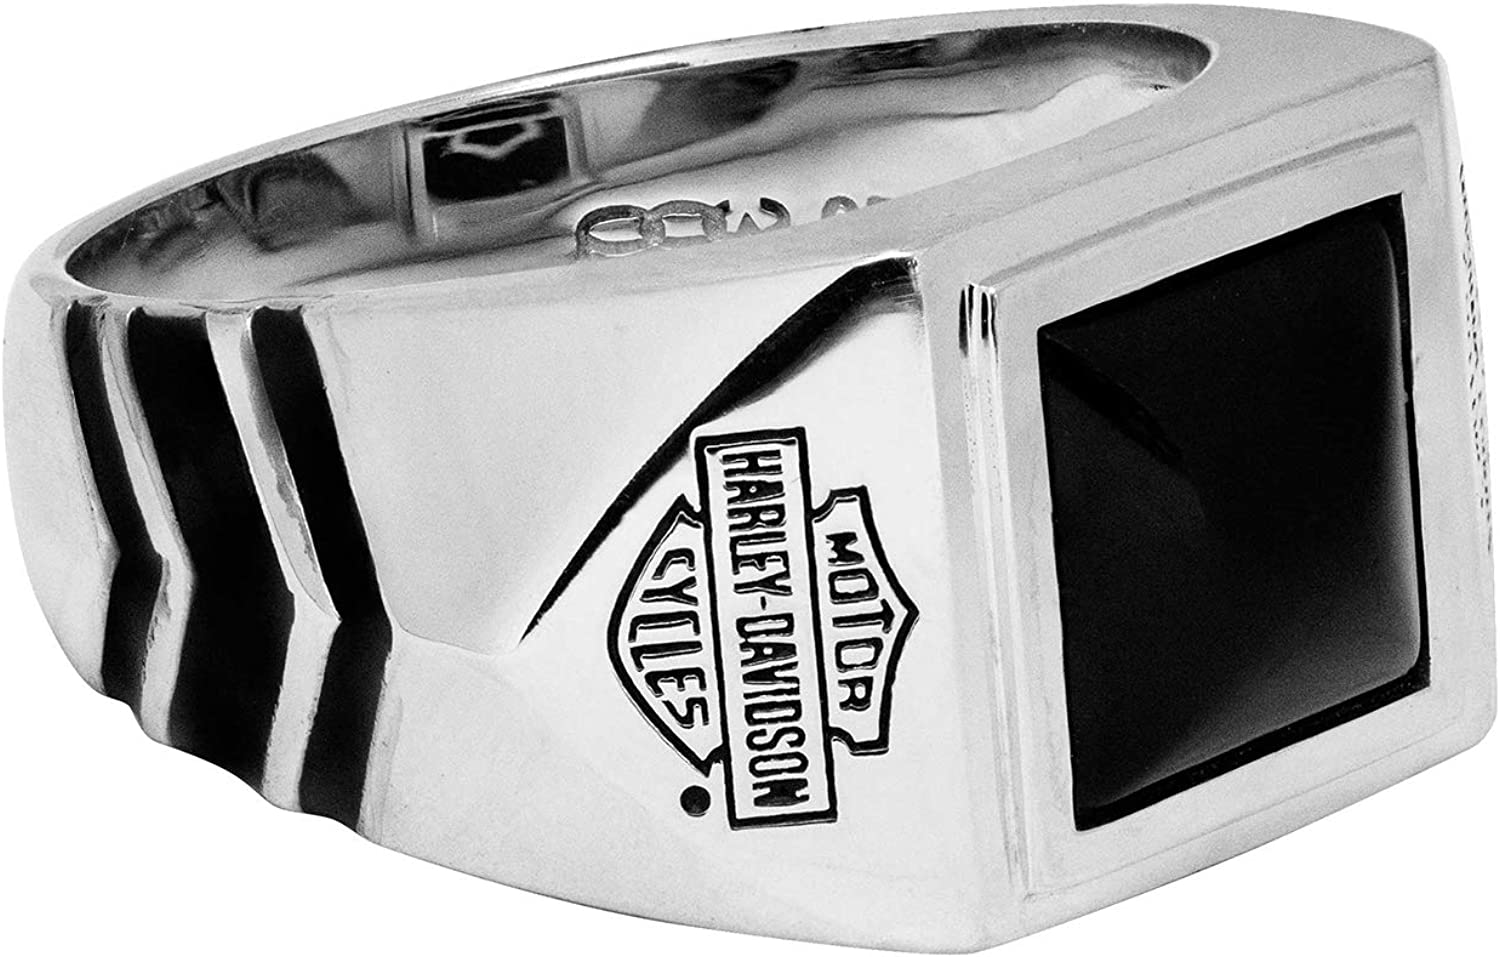 Harley-Davidson Mens Sterling Silver Square 毎日続々入荷 Onyx Ring Black BS 豊富な品